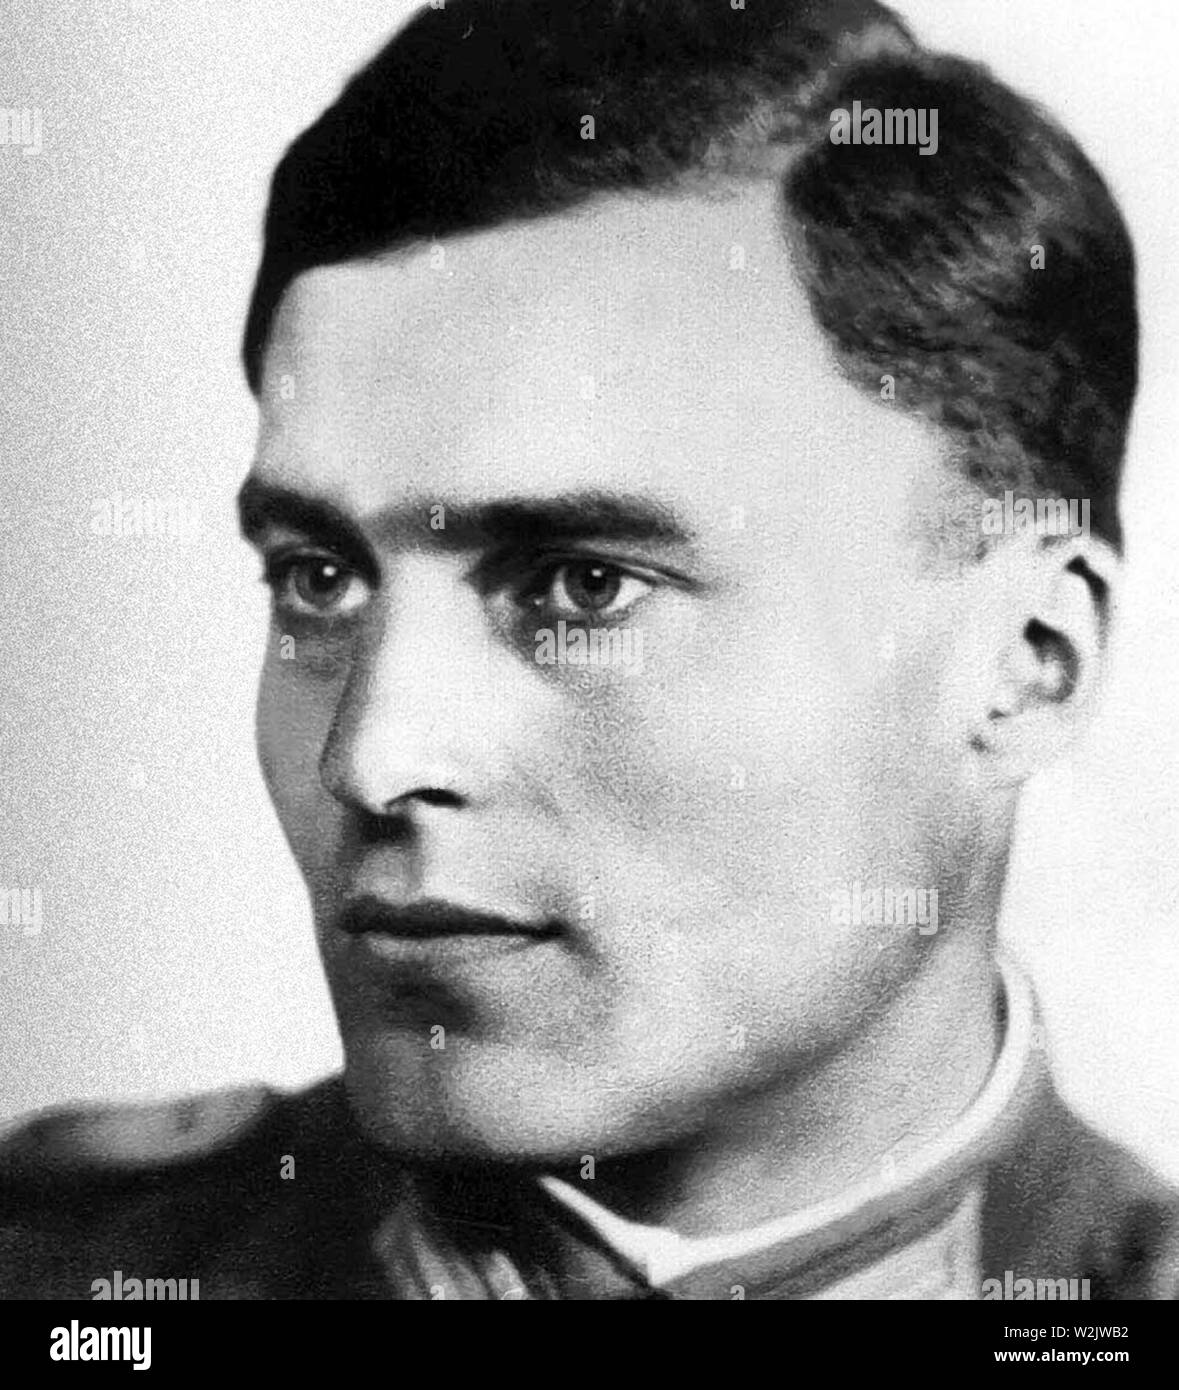 Claus von Stauffenberg, Claus Philipp Maria Schenk Graf von Stauffenberg (1907 – 1944) German army officer. Stauffenberg was one of the leading members of the failed 20 July plot of 1944 to assassinate Adolf Hitler, he was executed by firing squad shortly after the failed attempt known as Operation Valkyrie. - Stock Image